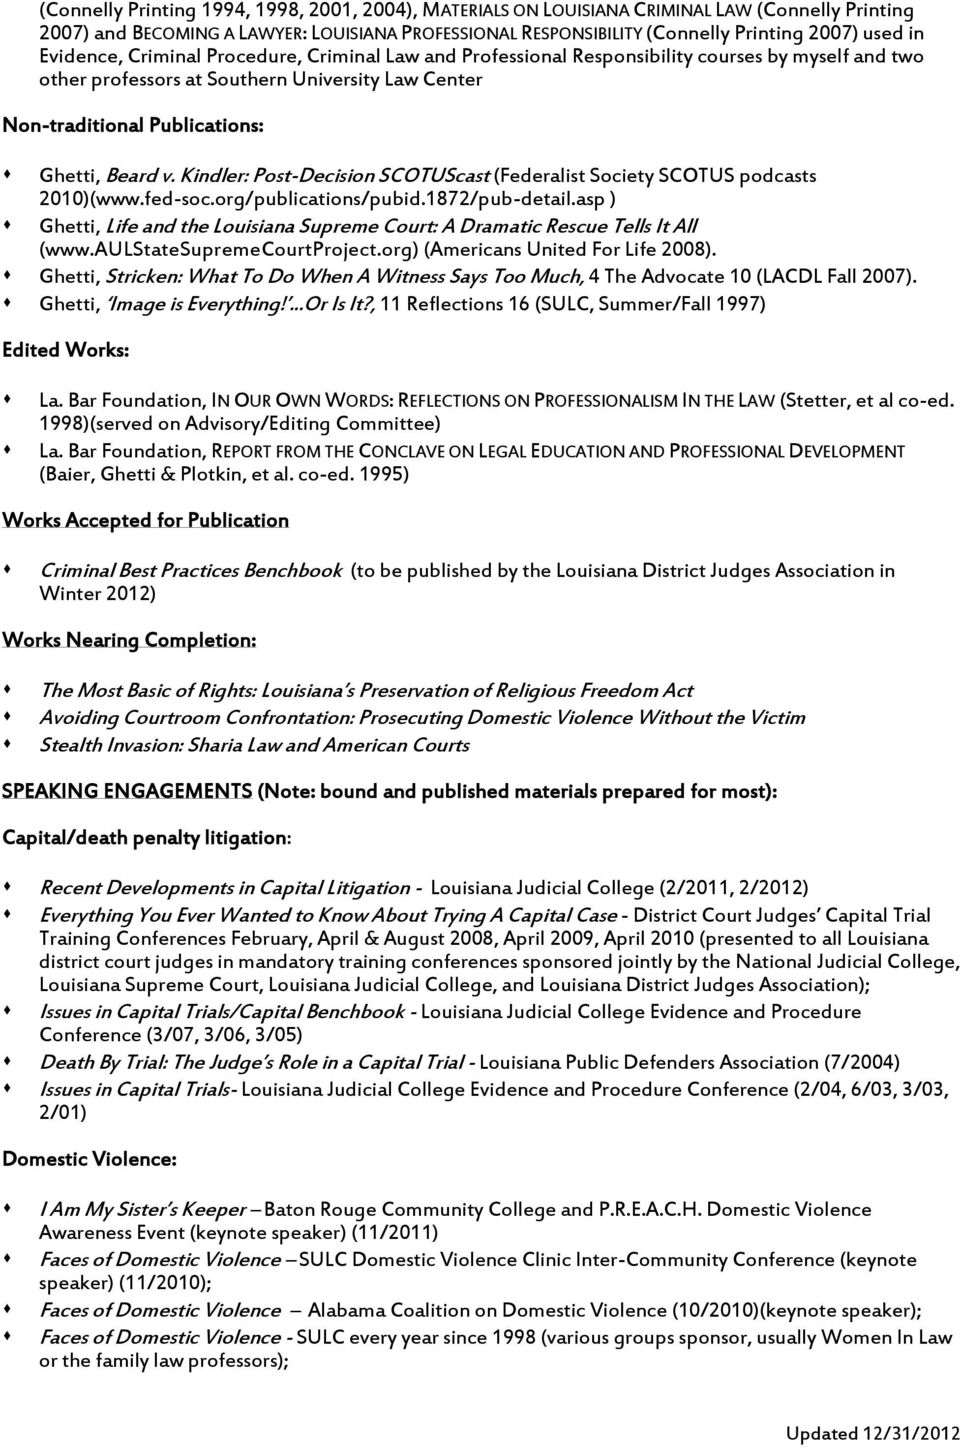 Kindler: Post-Decision SCOTUScast (Federalist Society SCOTUS podcasts 2010)(www.fed-soc.org/publications/pubid.1872/pub-detail.